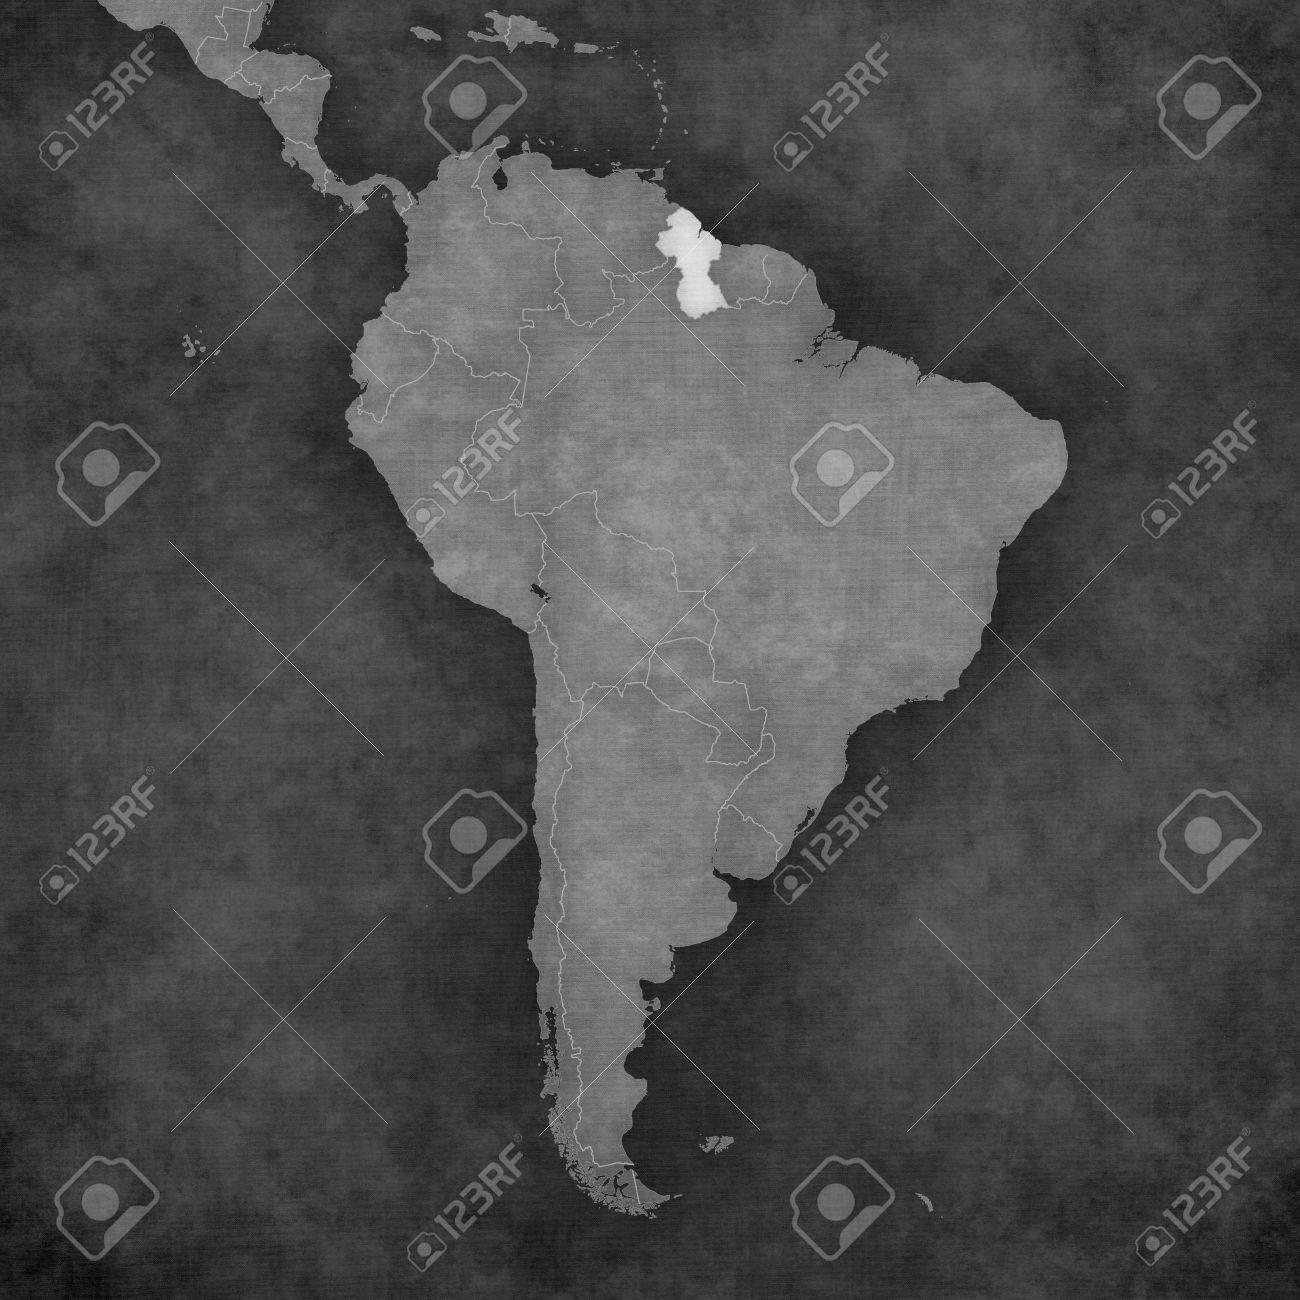 Guyana On The Map Of South America. The Map Is In Vintage Black ...